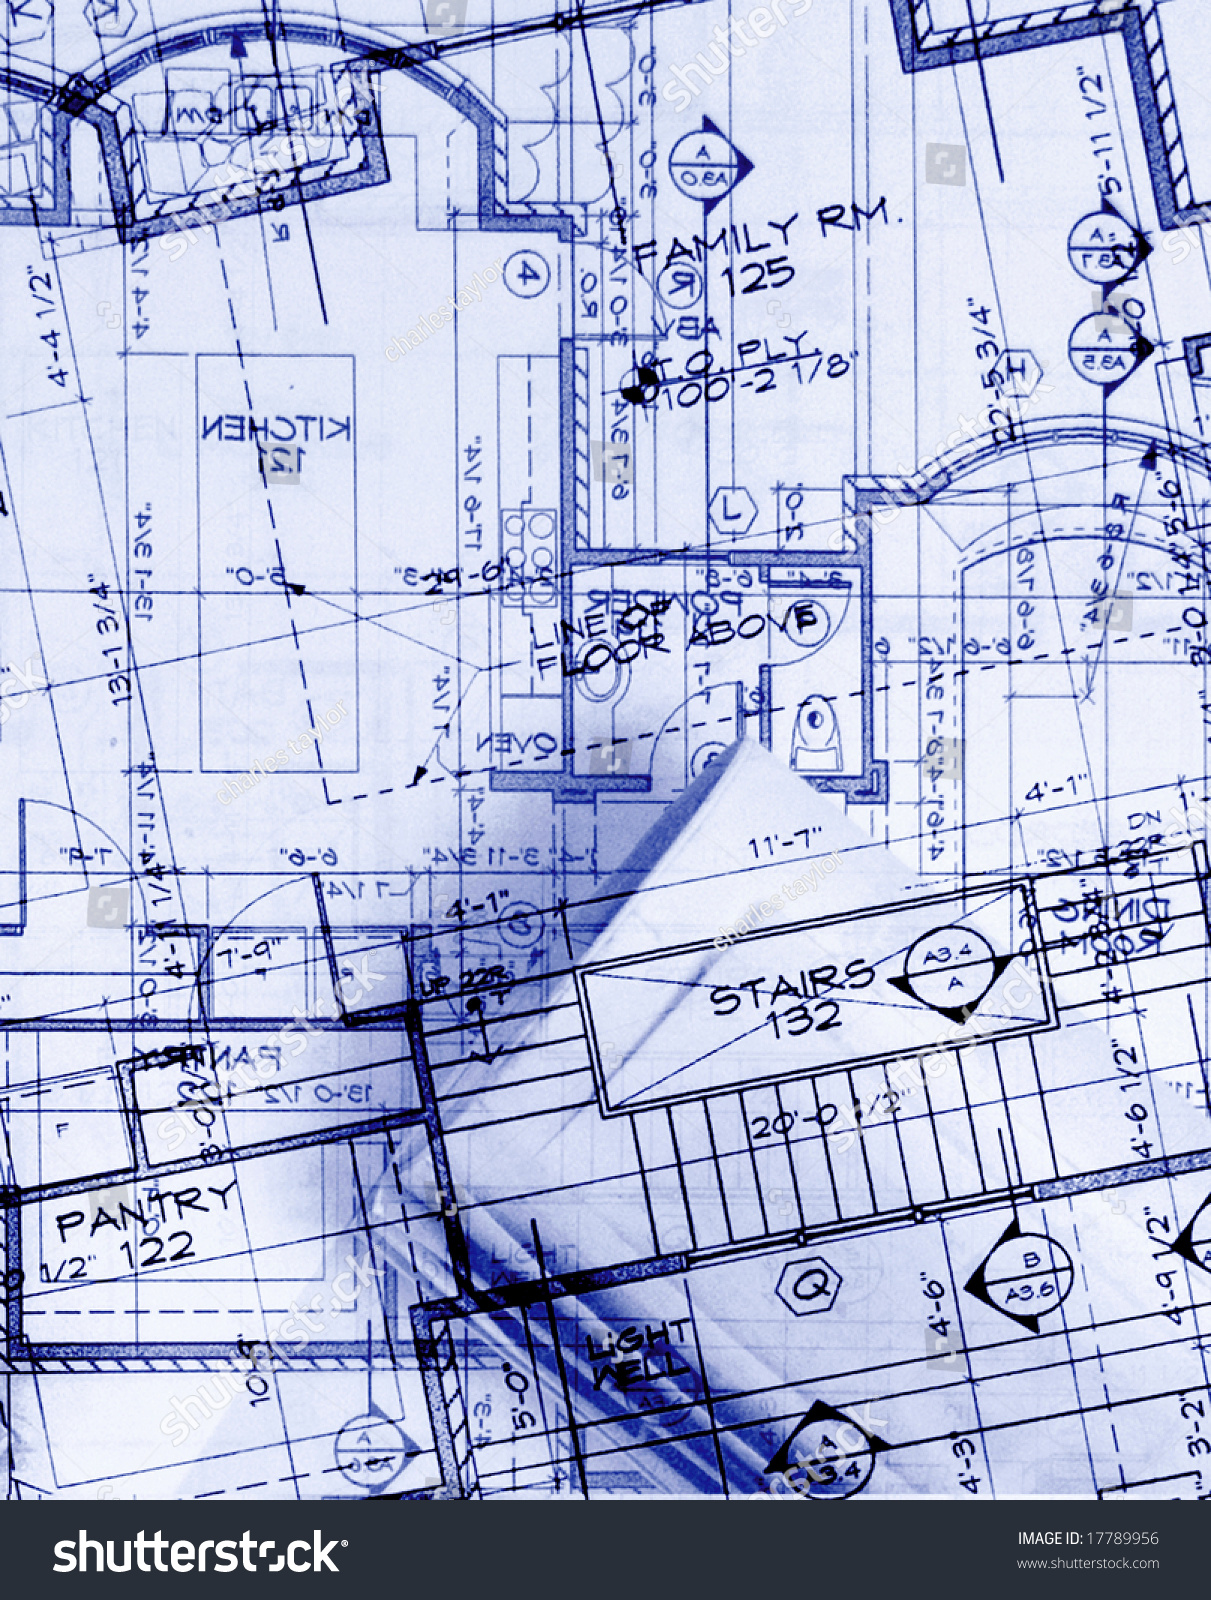 Incredible Abstract House Plans In Blue Stock Photo 17789956 Avopix Com Download Free Architecture Designs Embacsunscenecom